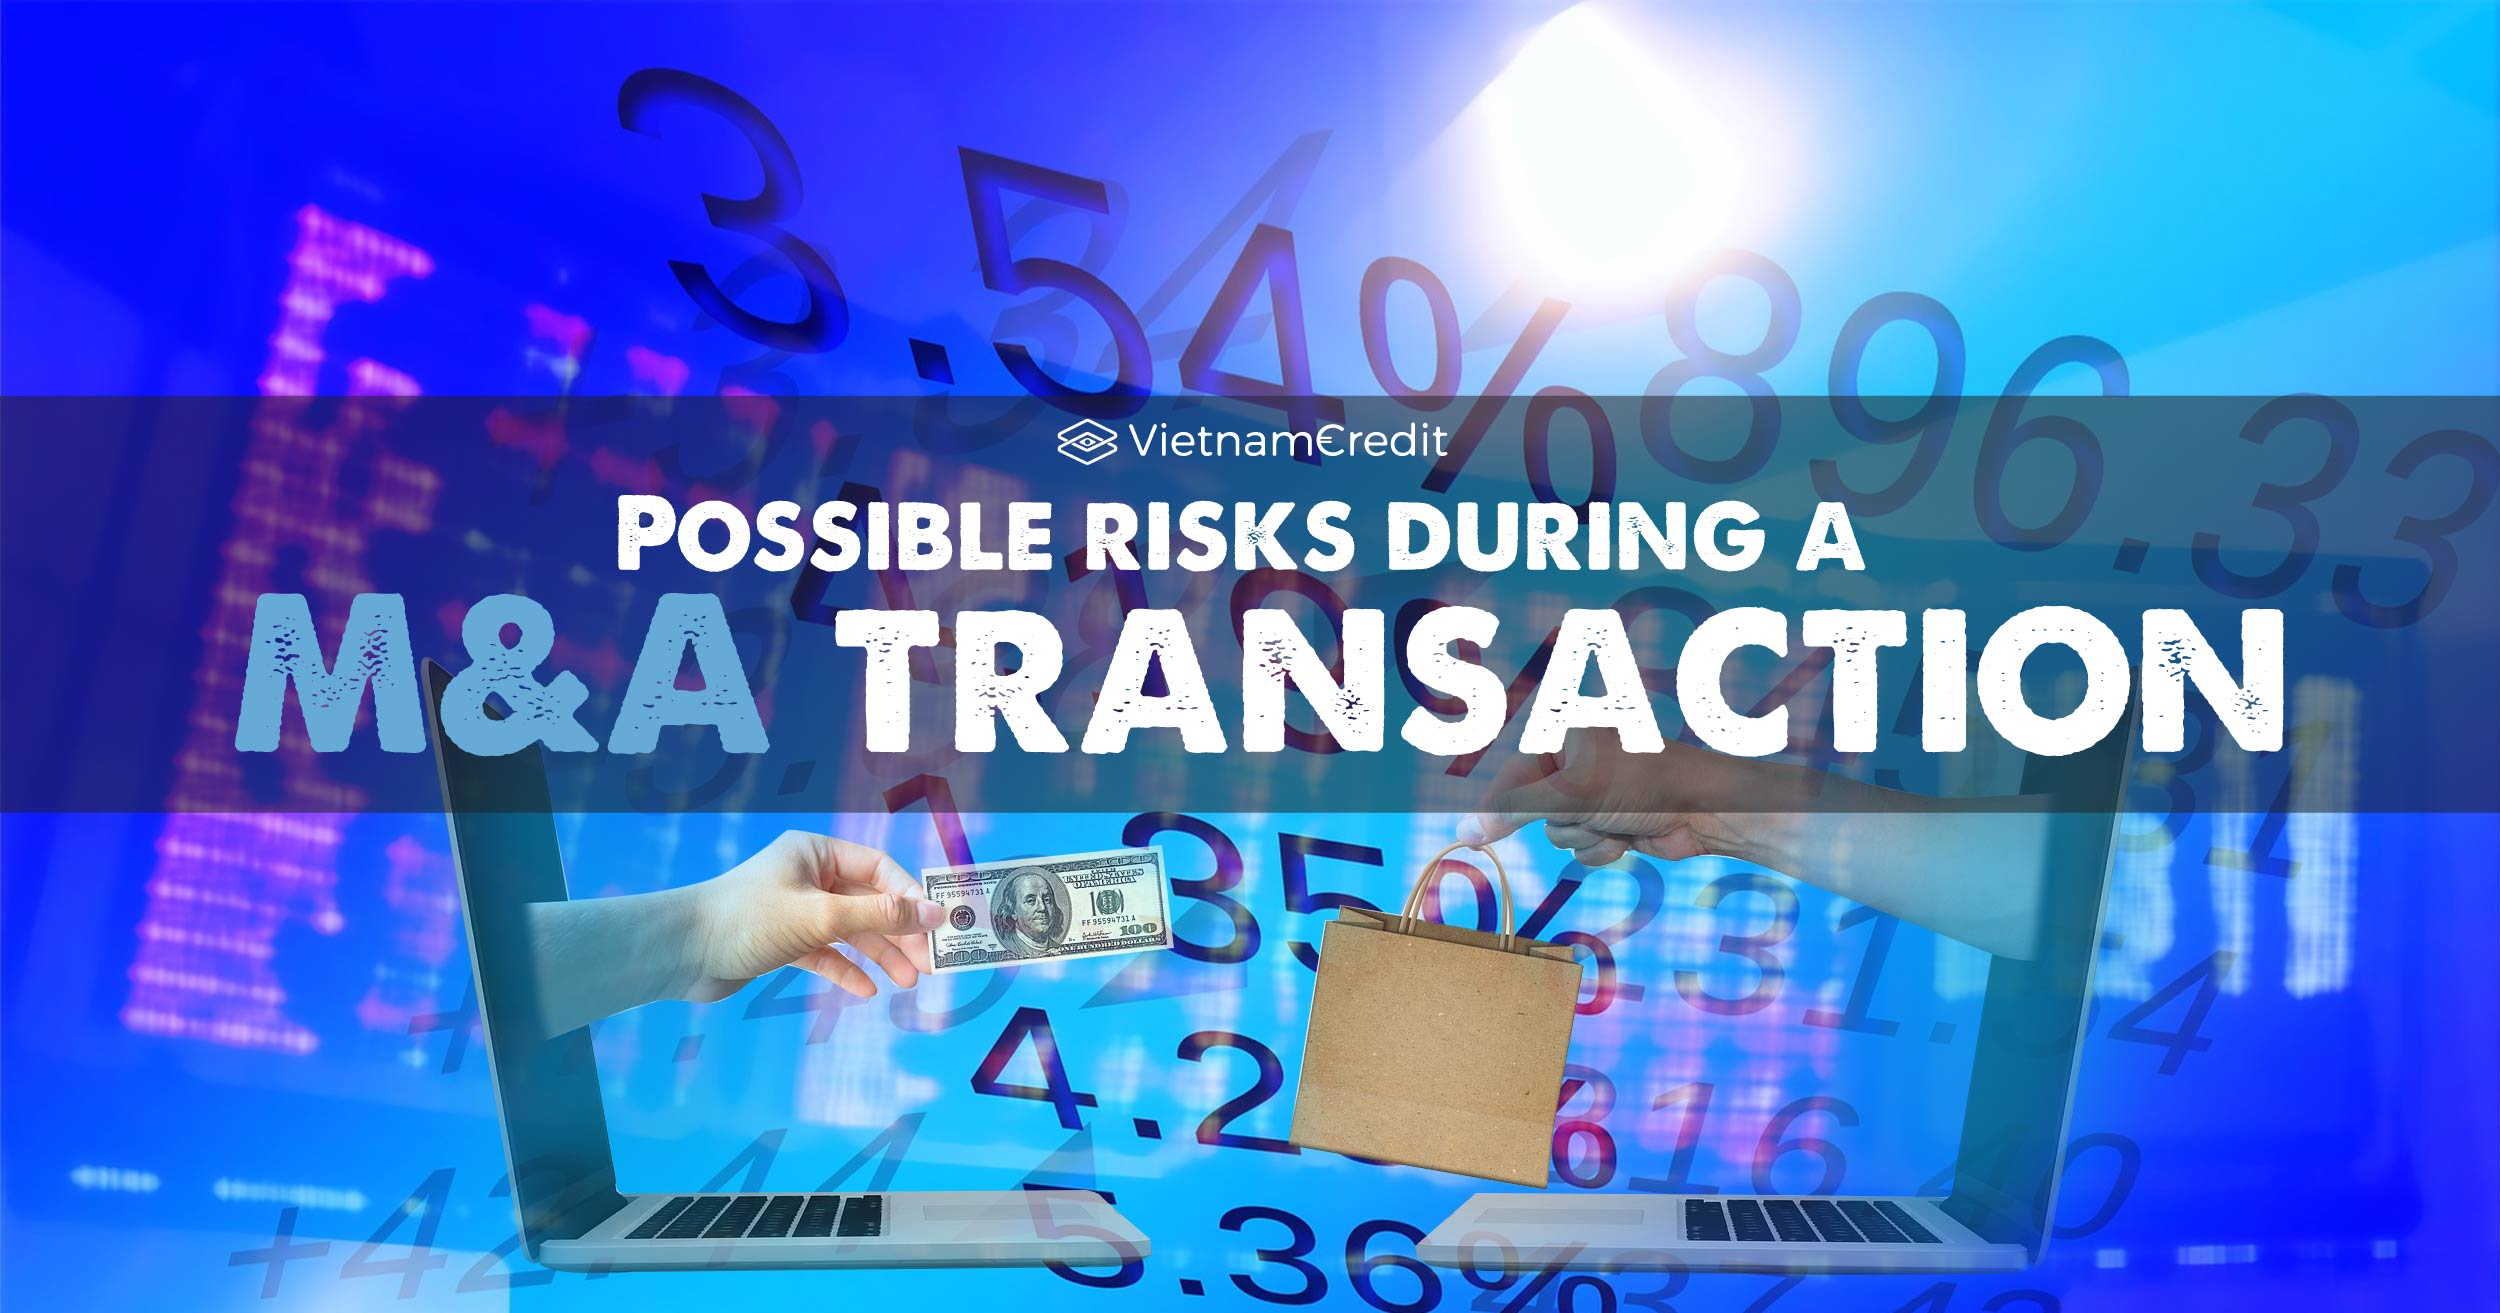 Possible risks during an M&A transaction